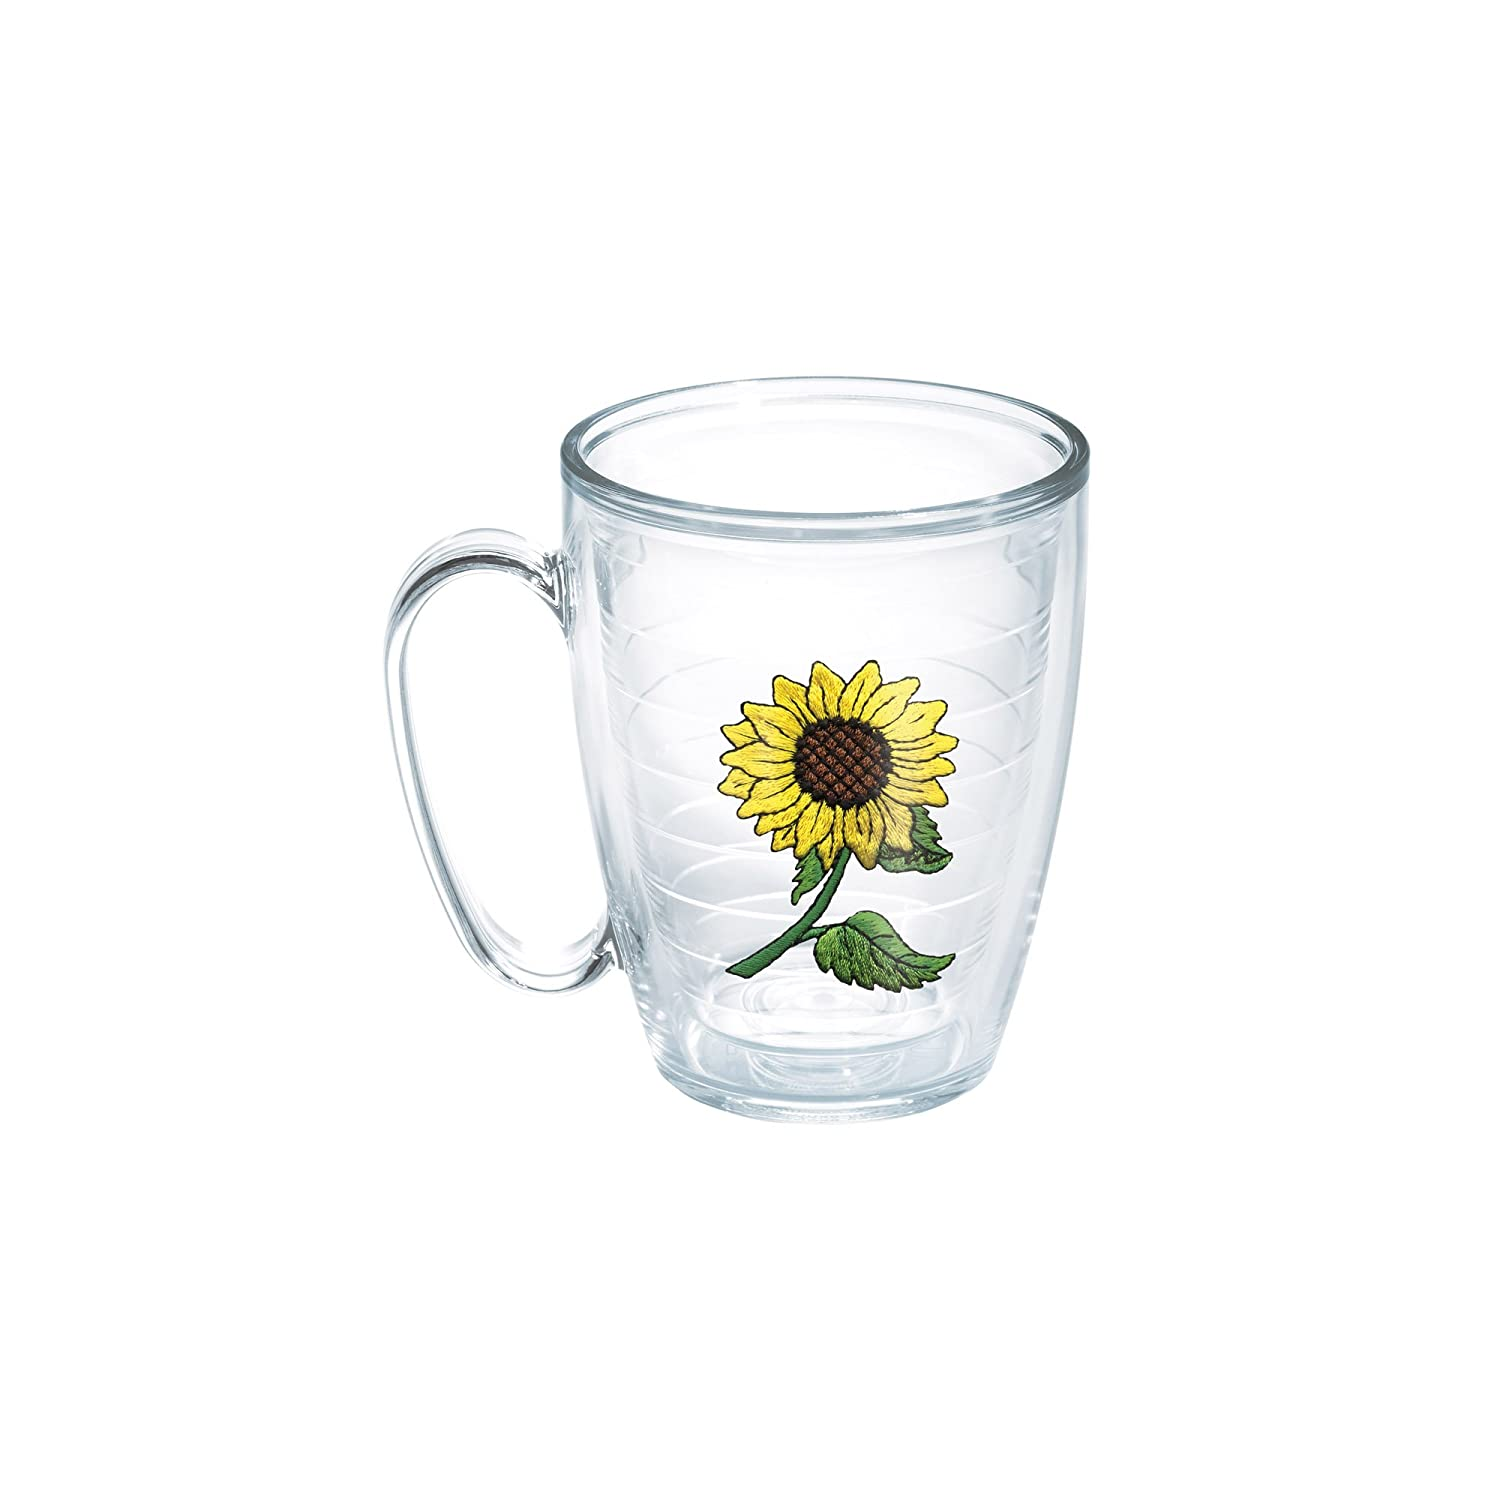 Tervis Sunflower 15-Ounce Mug, Boxed